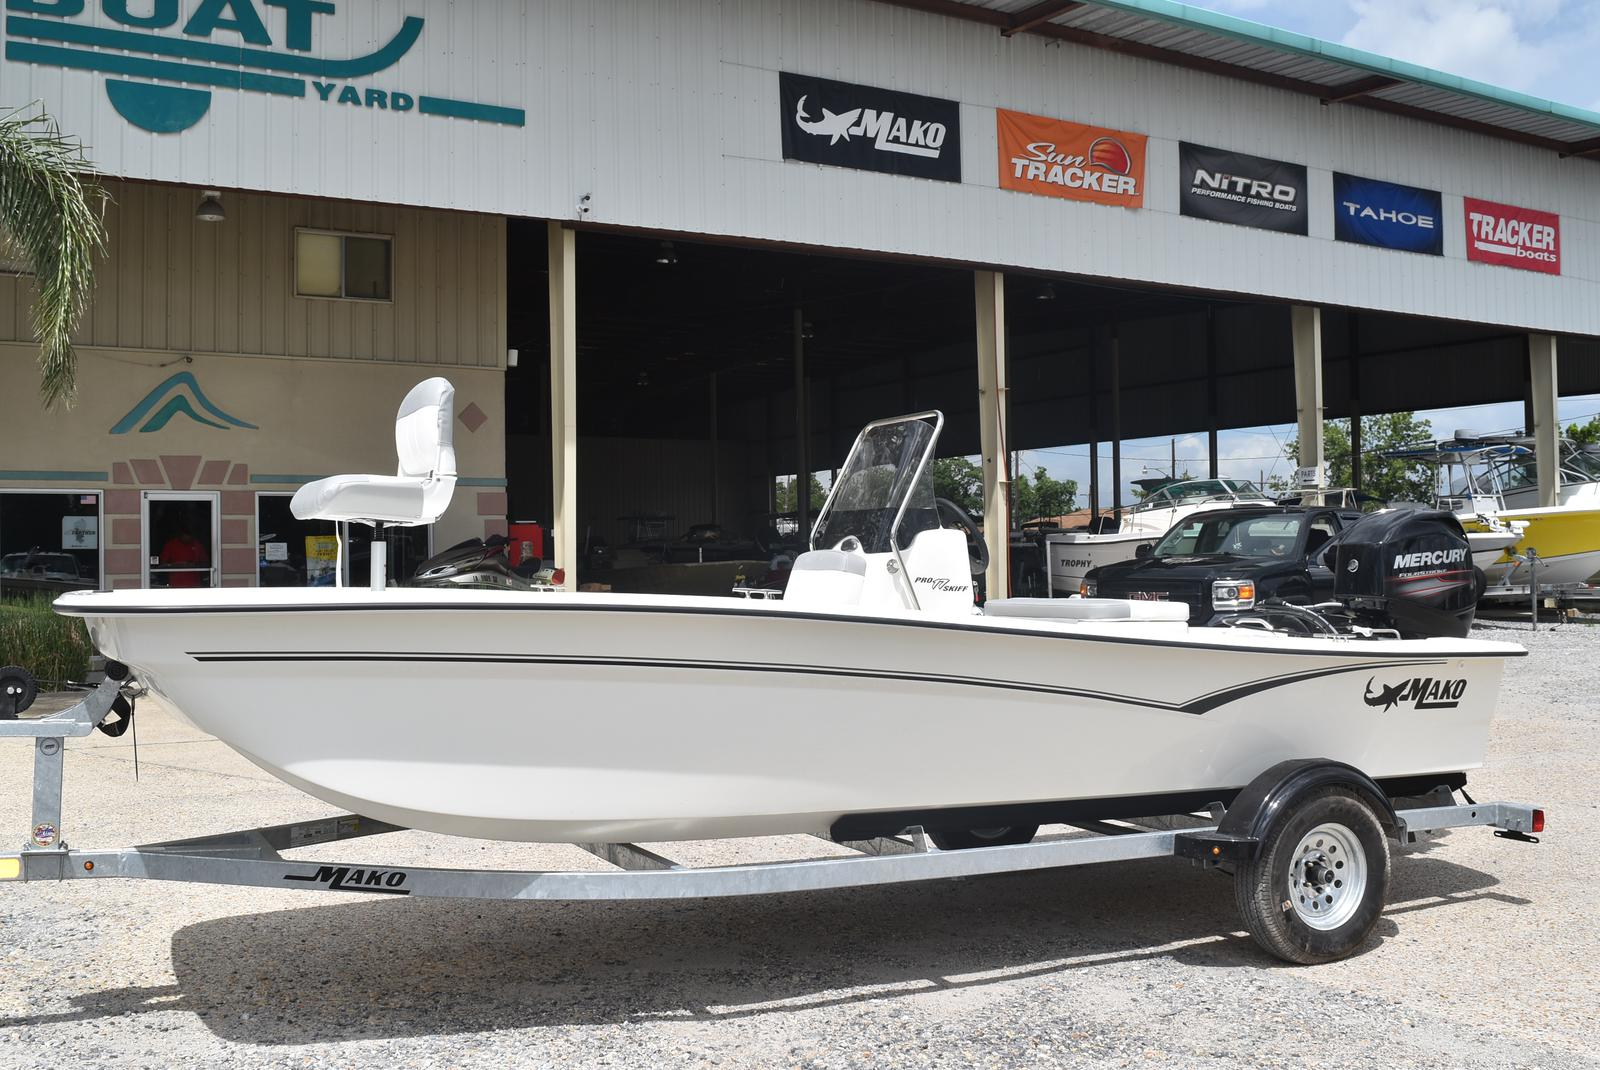 2020 Mako boat for sale, model of the boat is Pro Skiff 17, 75 ELPT & Image # 98 of 702